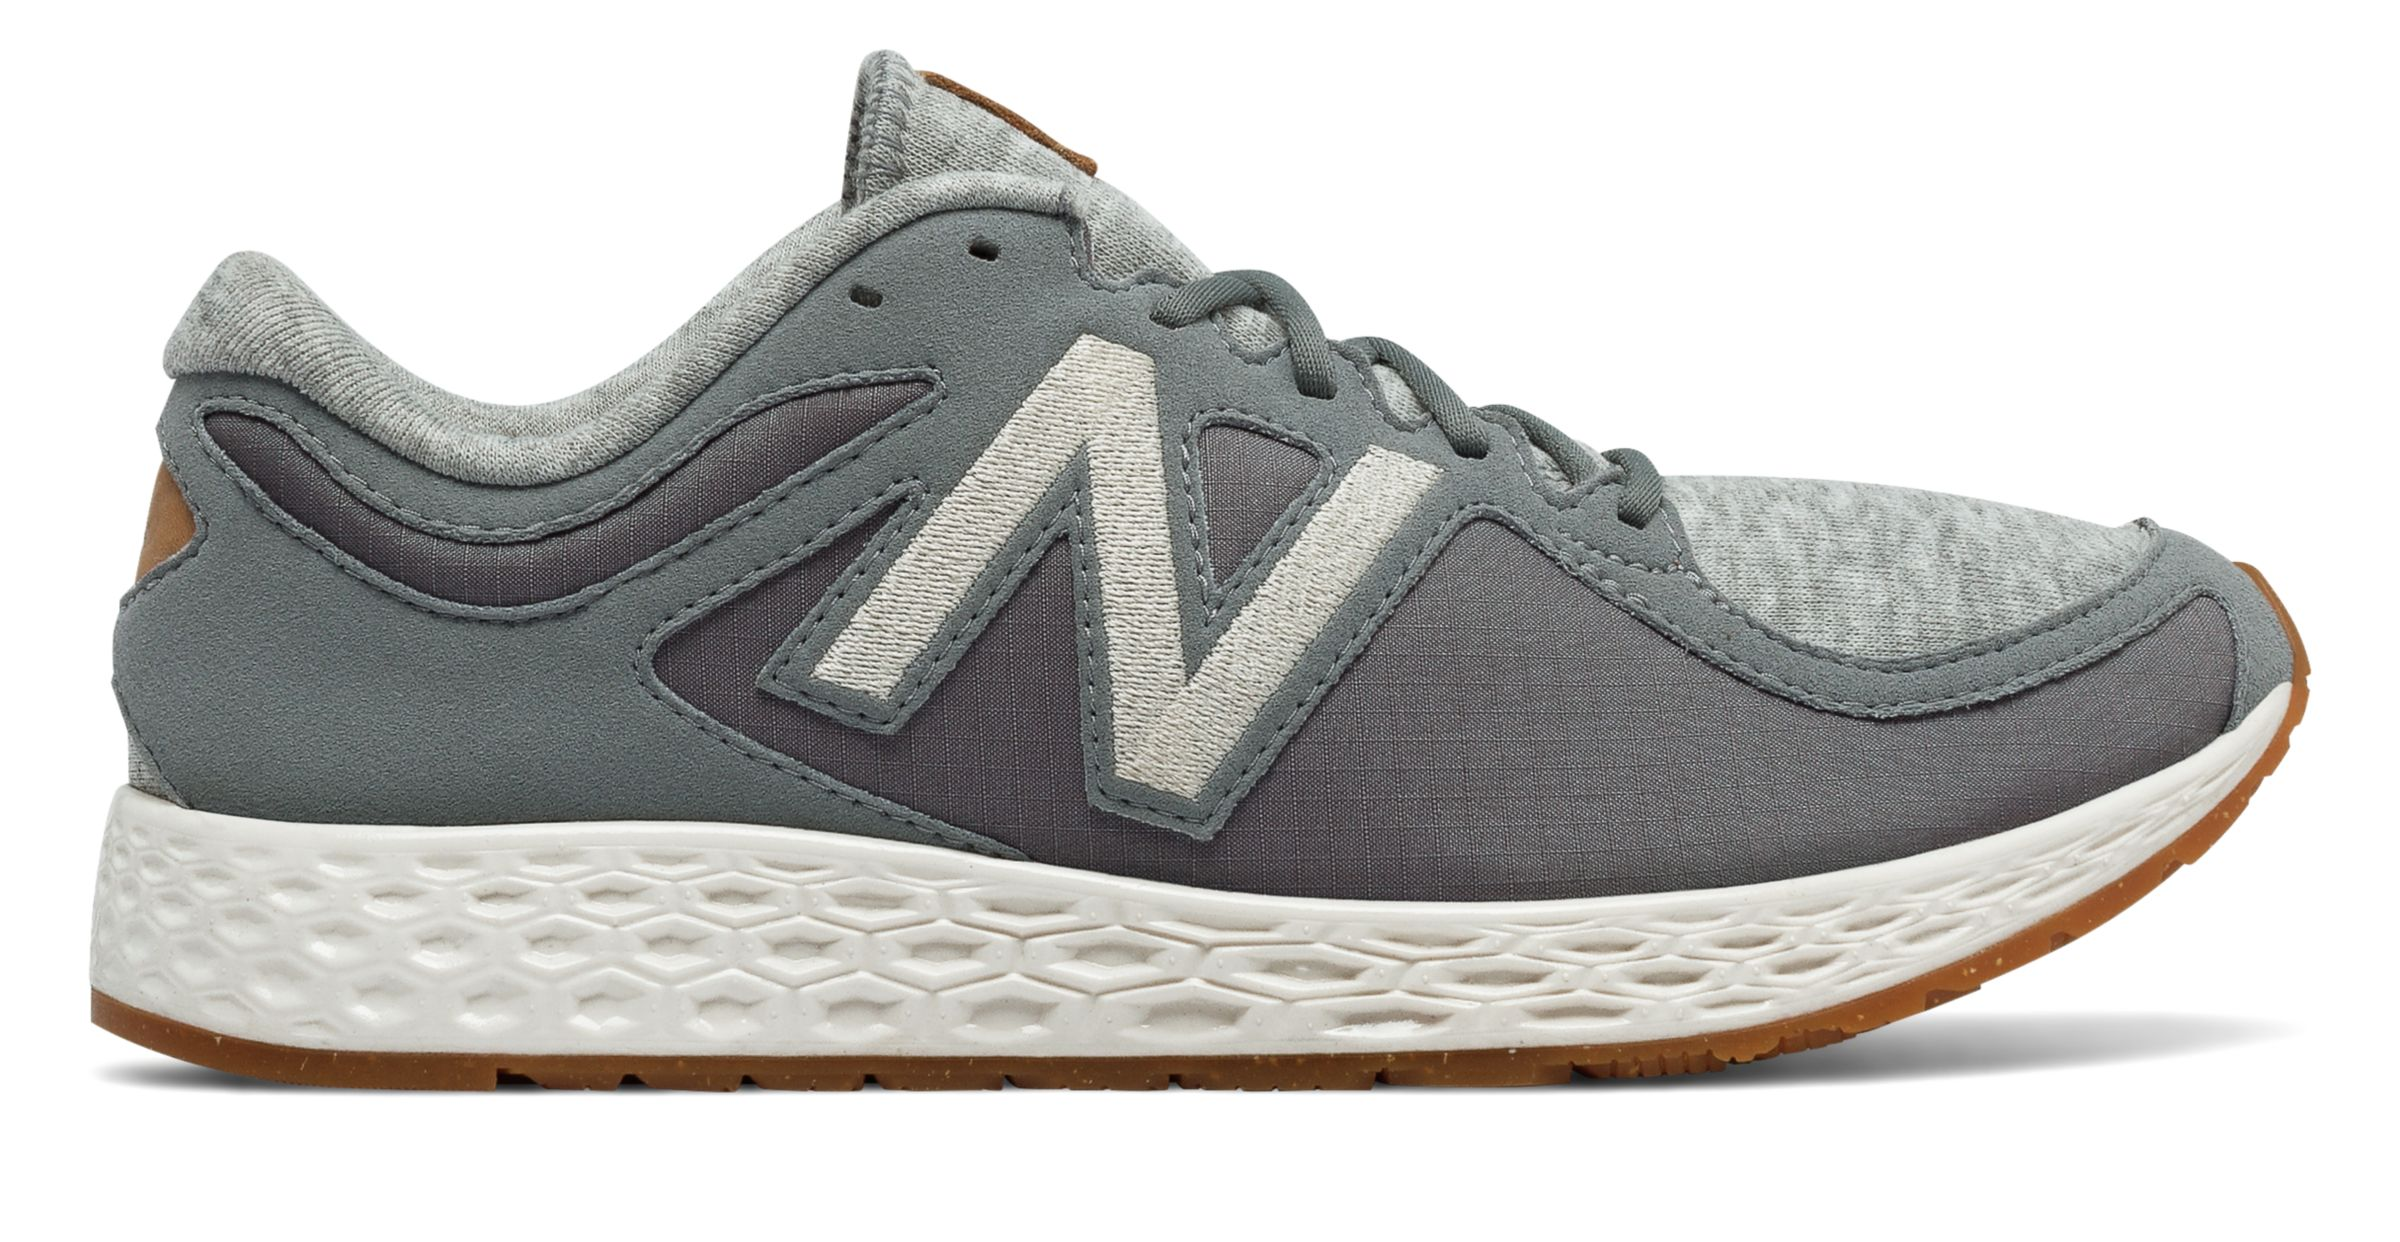 New Balance : Fresh Foam Zante v2 : Women's Shoes : WLZANTVB